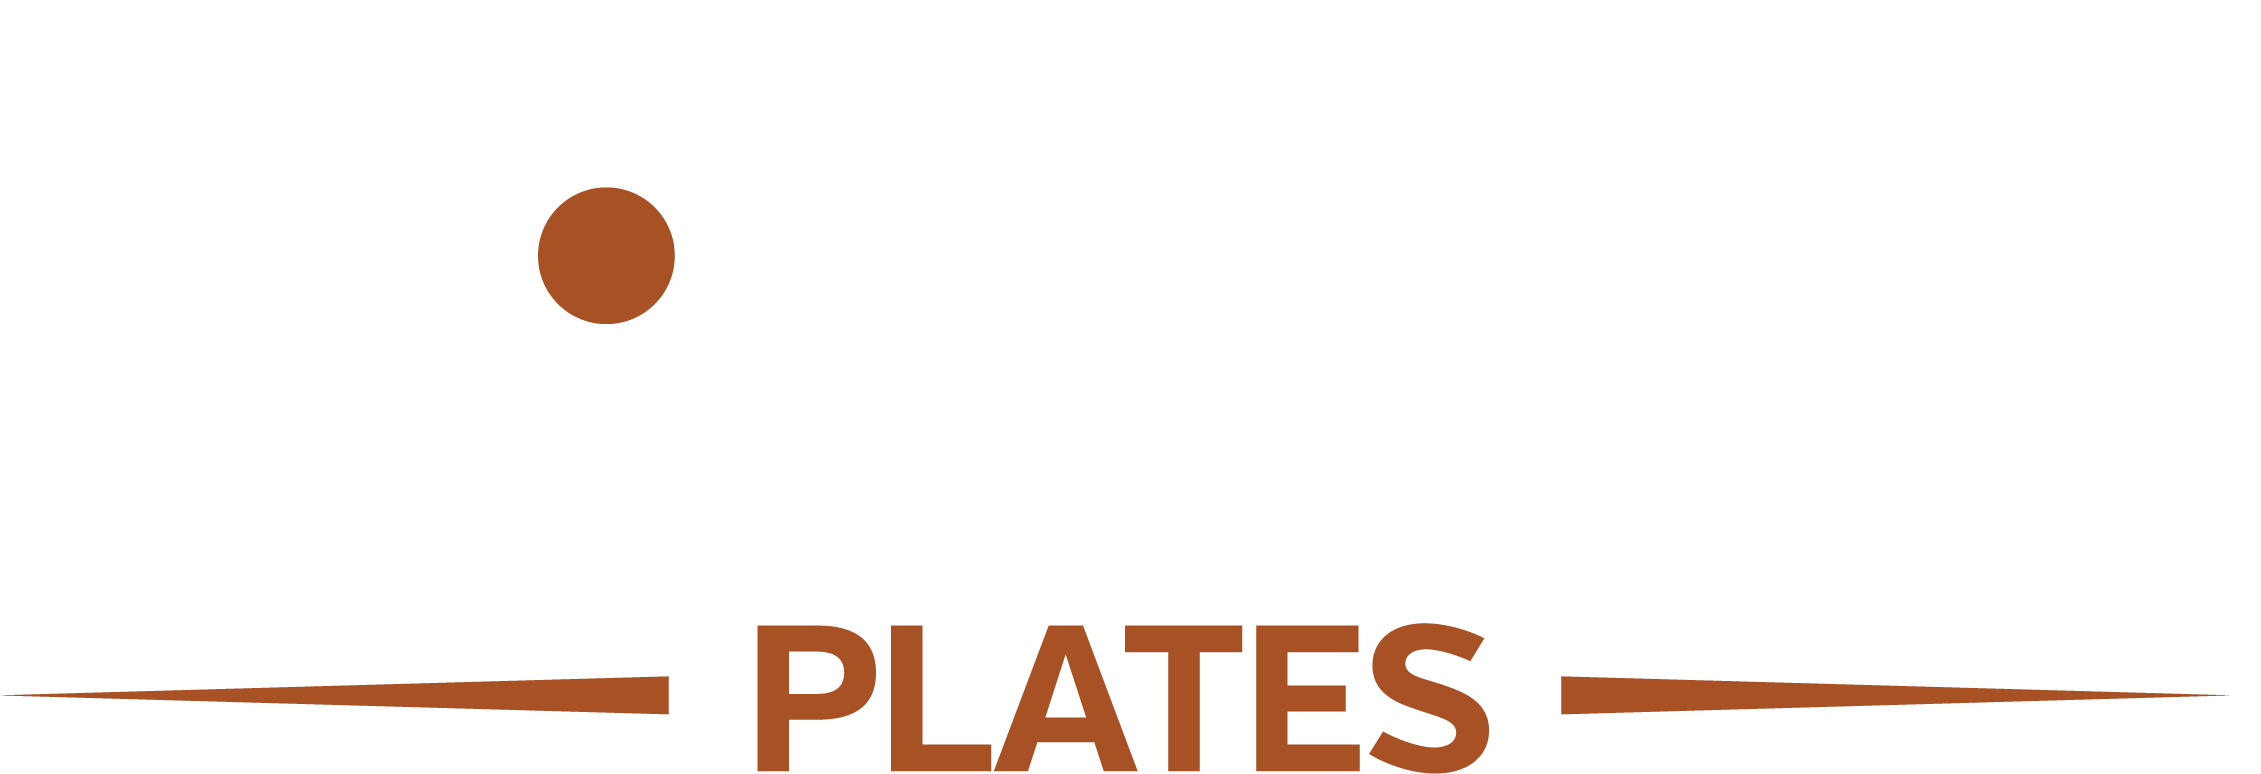 Rocketplates Logo.